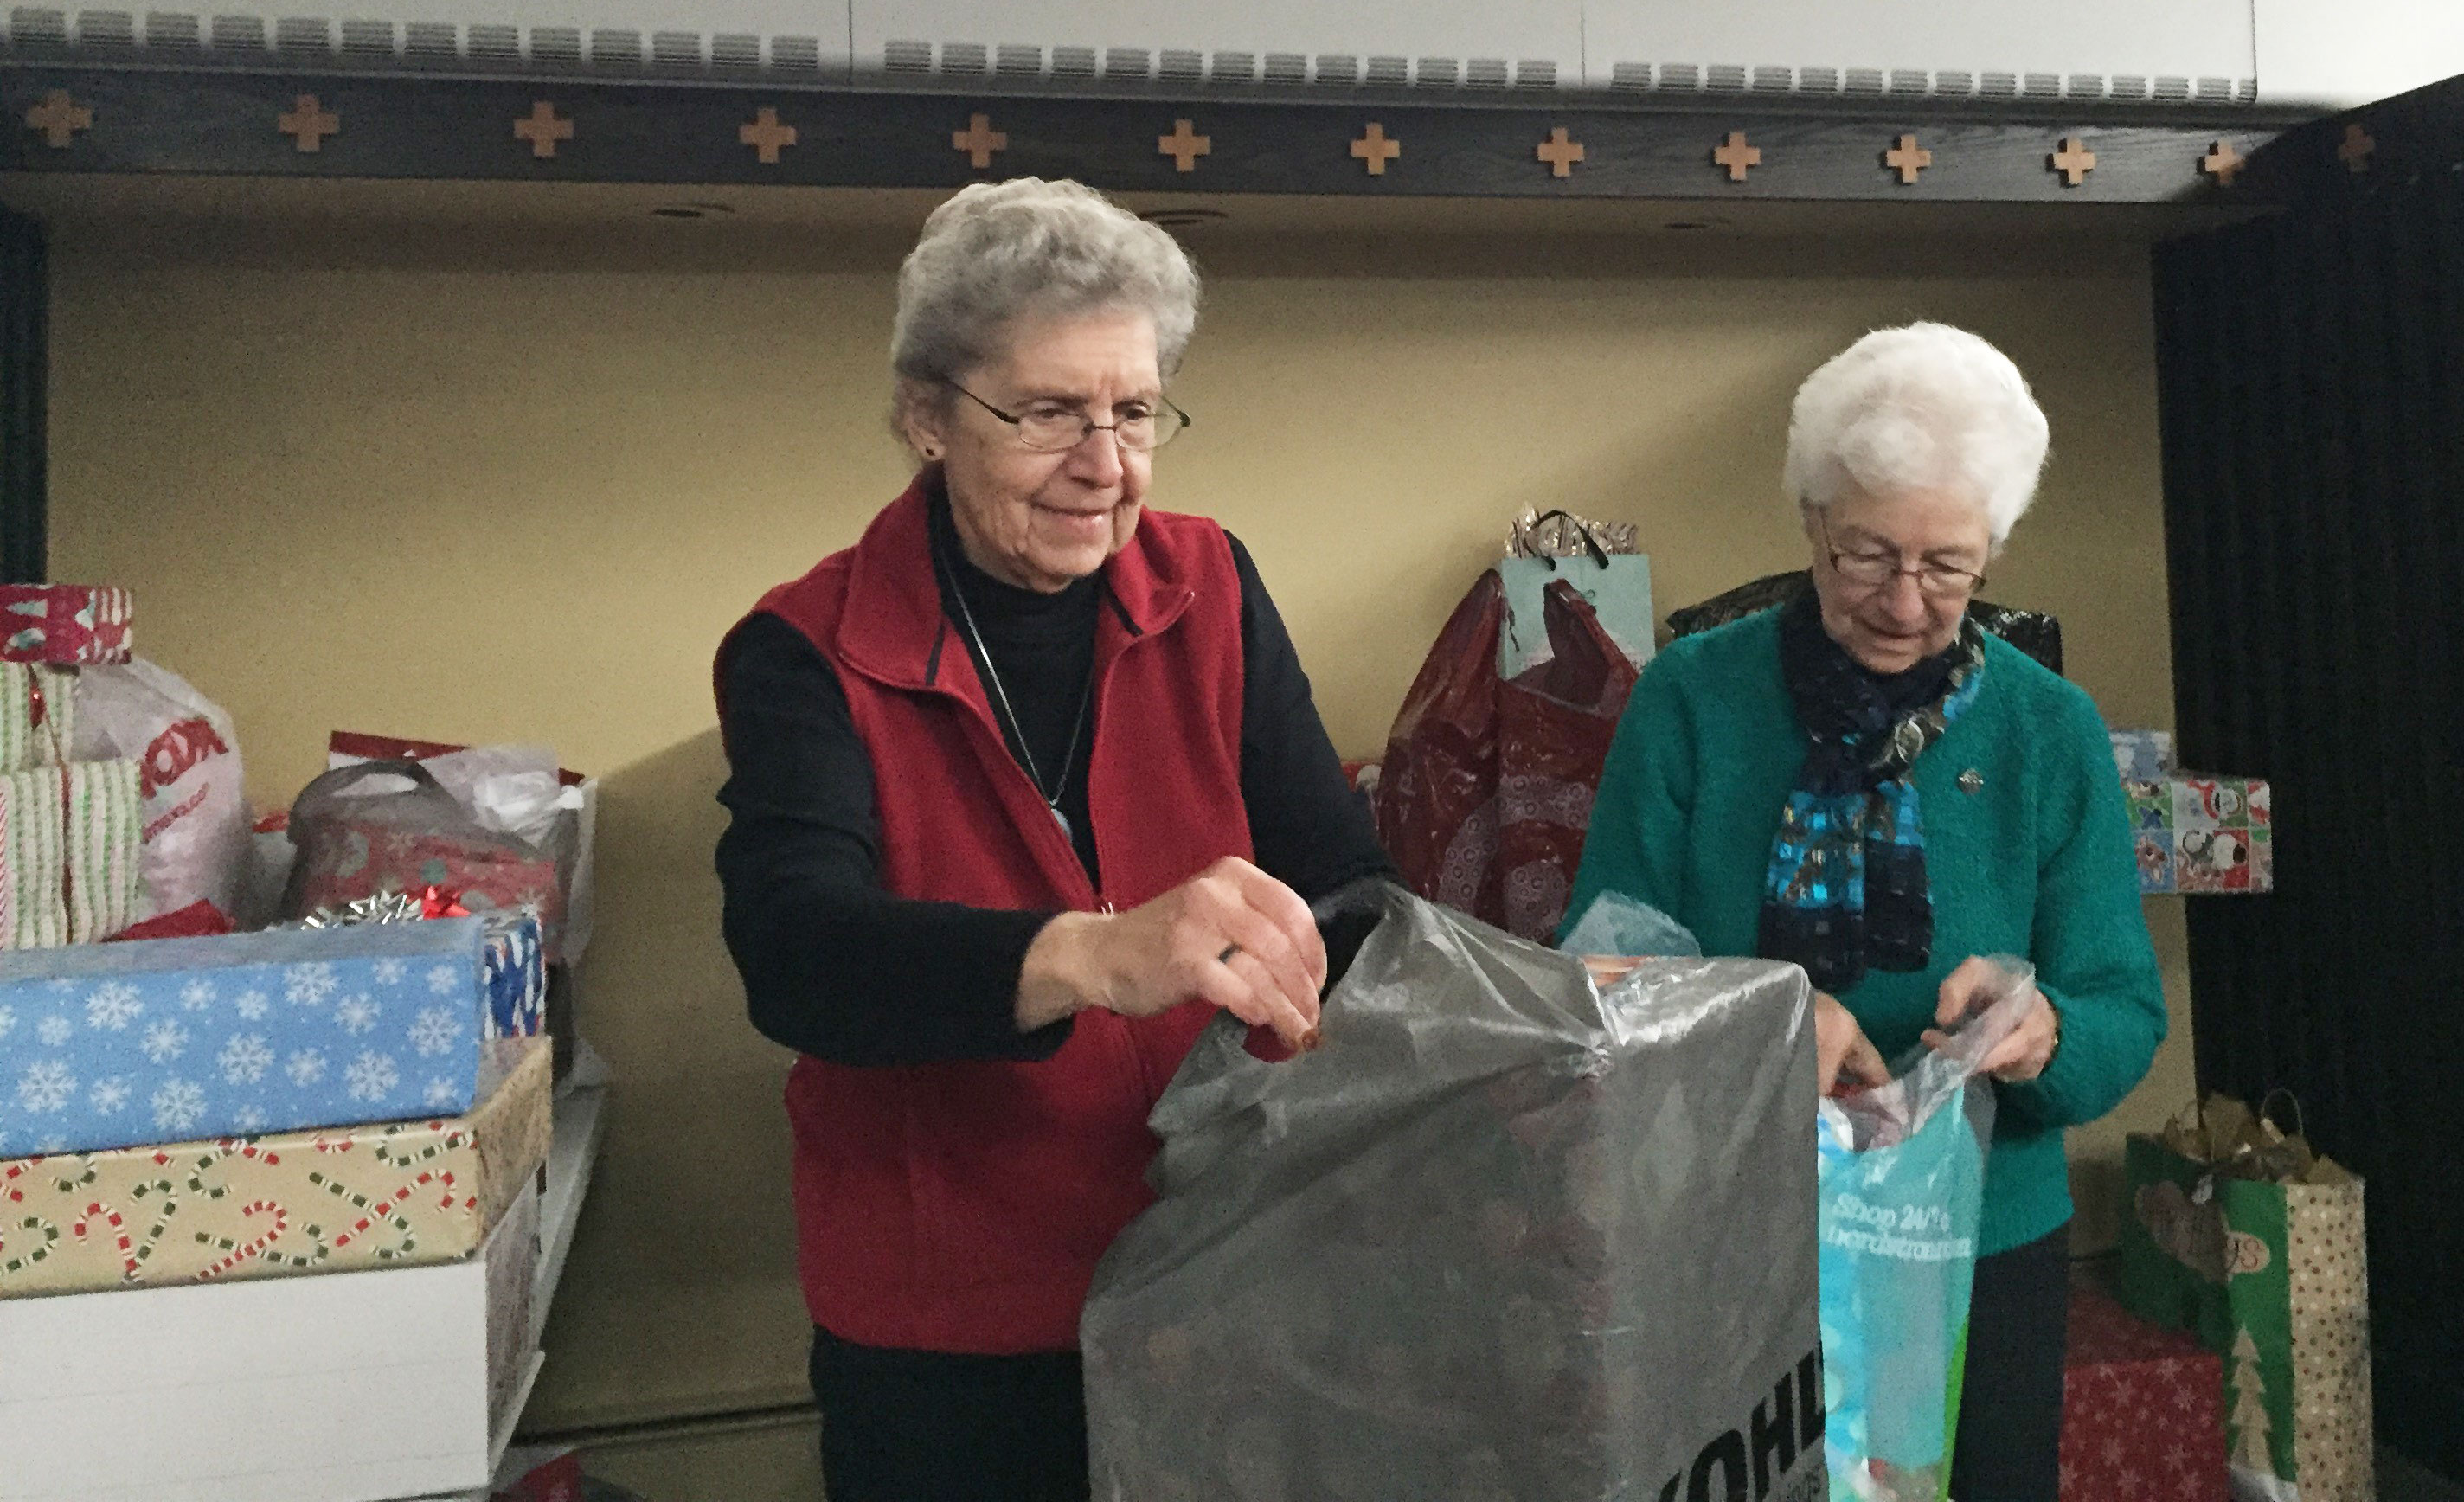 Sisters Rita Jirik and Paulissa Jirik volunteer at the Theresa Living Center (TLC) in St. Paul, Minnesota, during the holiday season. They are wrapping gifts for the clients of TLC.